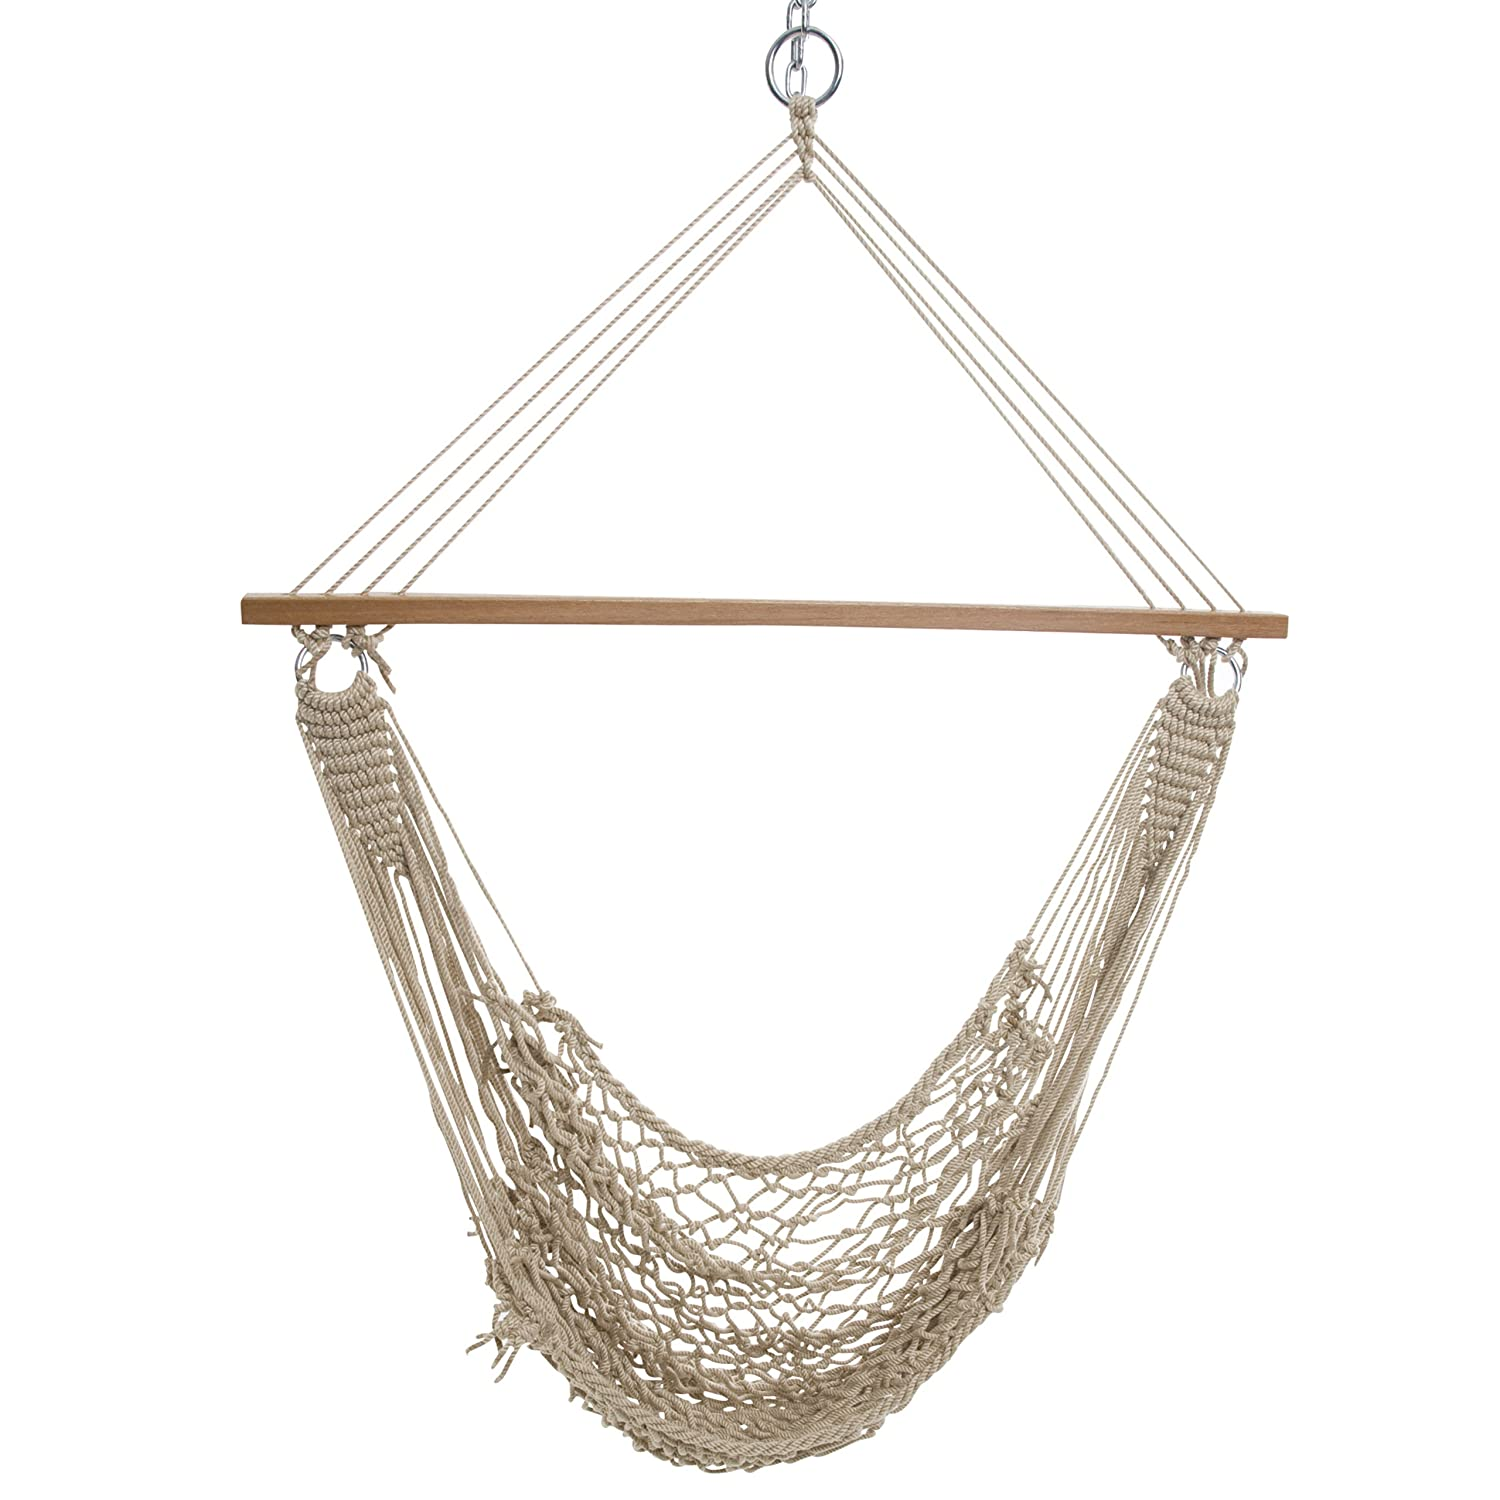 Amazon.com : Castaway Single Cotton Rope Swing : Outdoor And Patio  Furniture : Patio, Lawn & Garden - Amazon.com : Castaway Single Cotton Rope Swing : Outdoor And Patio